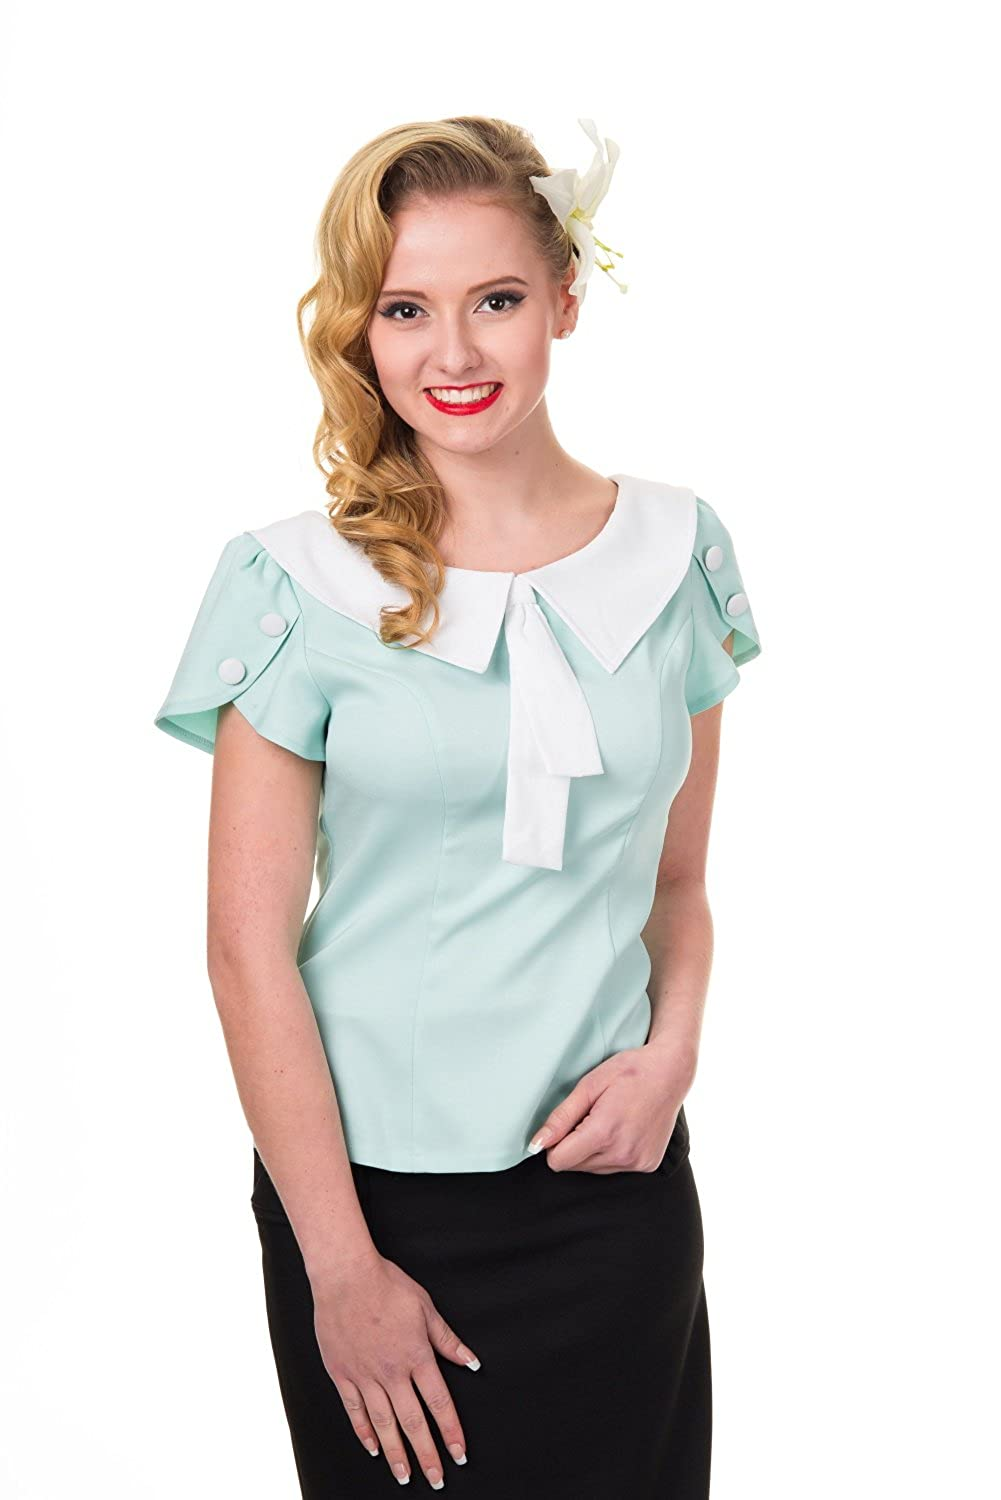 1960s -1970s Blouses, Shirts and Tops Banned 60s Vintage Retro Two Tone Aqua Tie Neck Sweetheart Top Shirt $36.00 AT vintagedancer.com